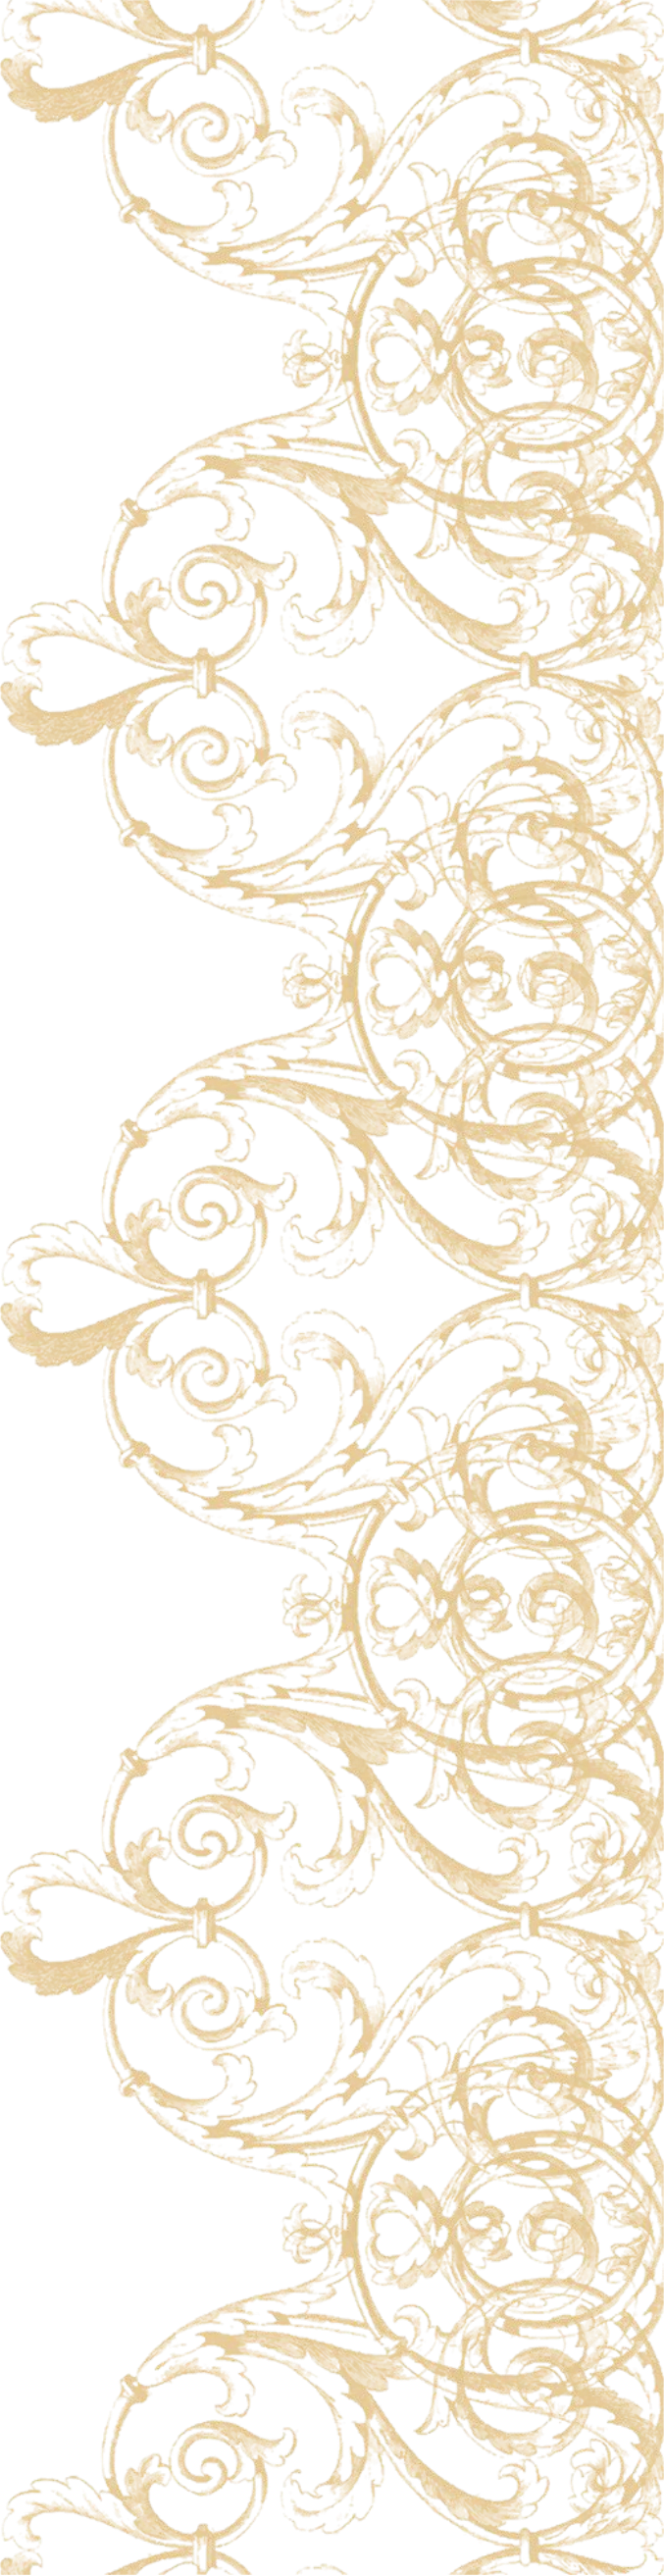 White lacy border clipart black and white White Lace Clip Art Free | Vintage Lace Border image ... black and white